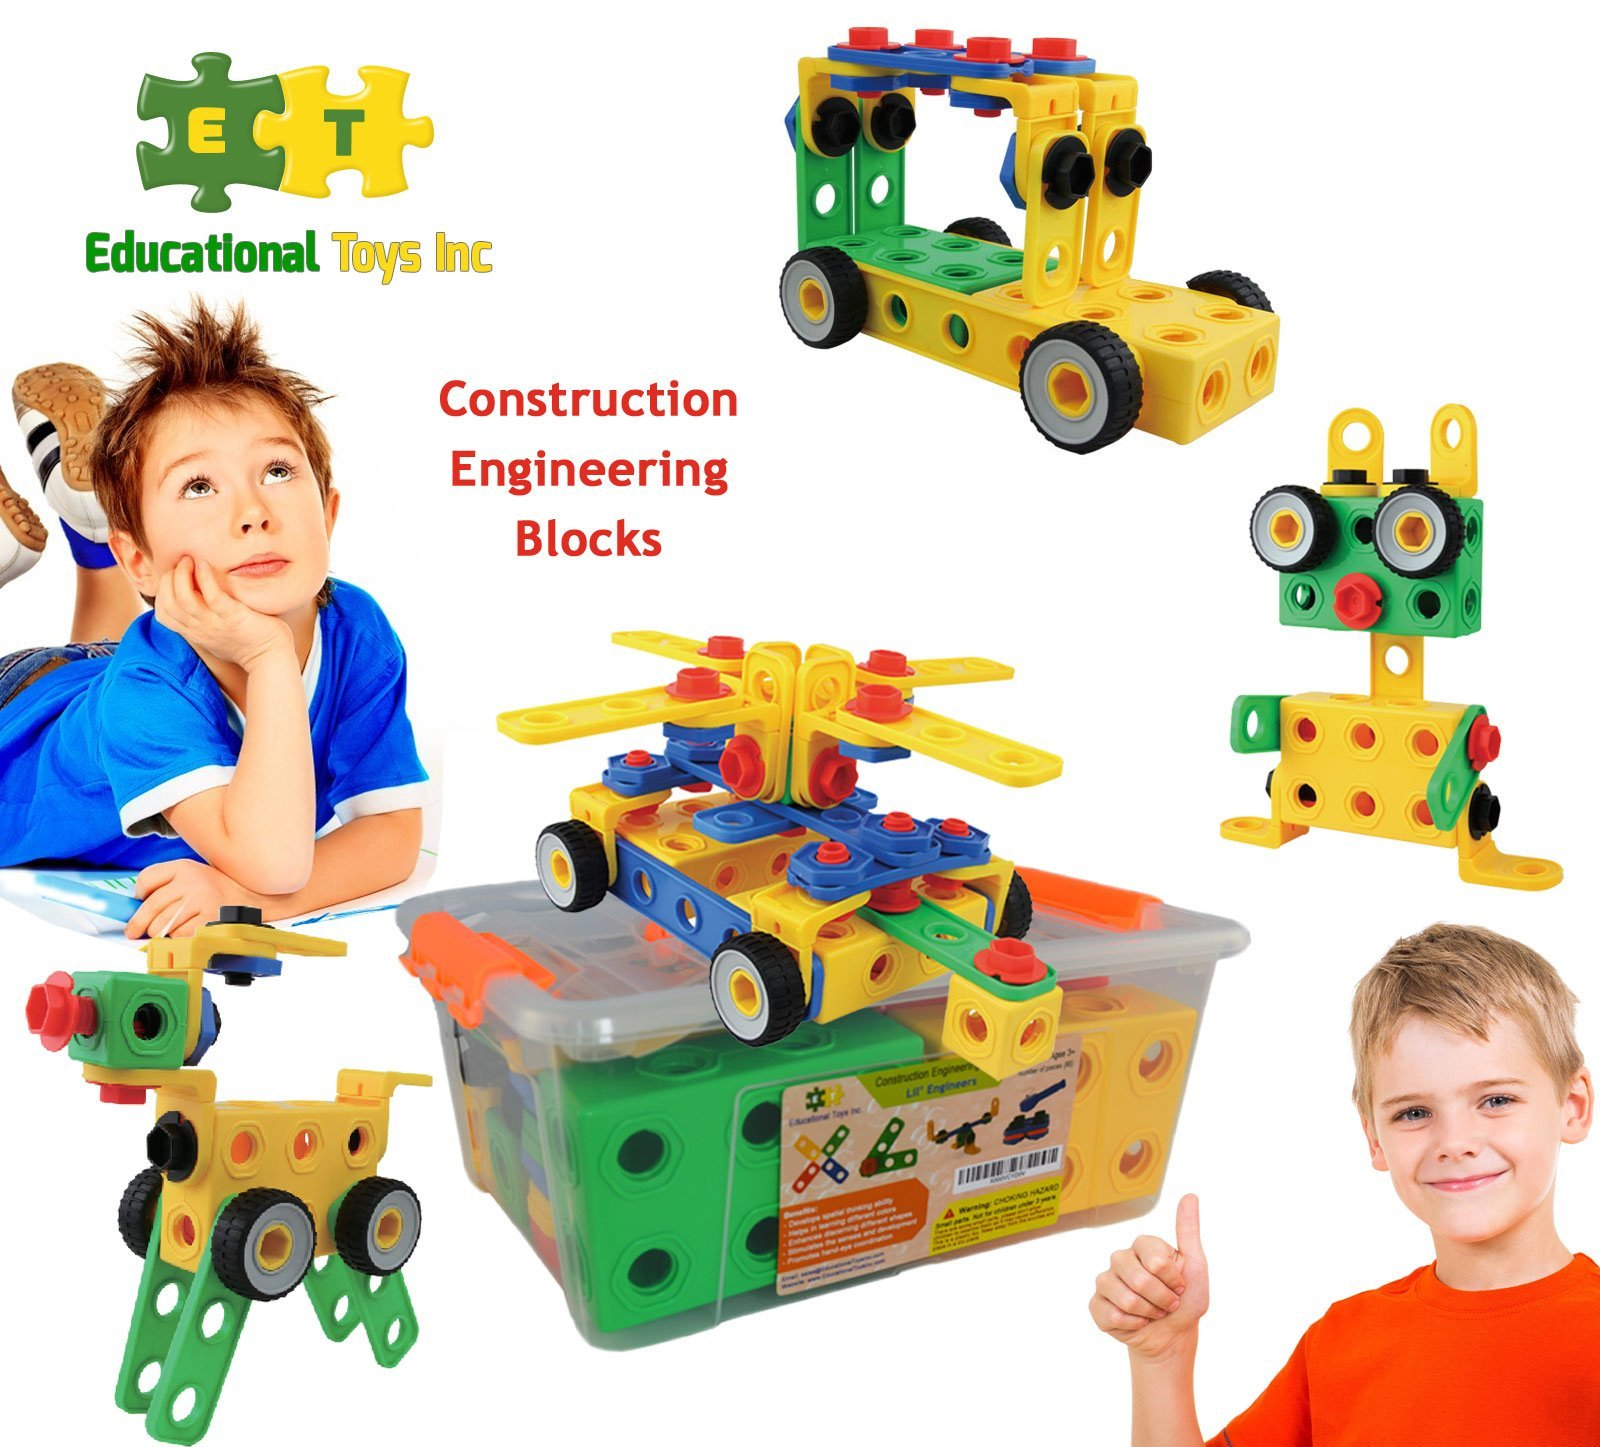 Construction Equipment Toys For Boys : We accept all major credit cards amazon payments and